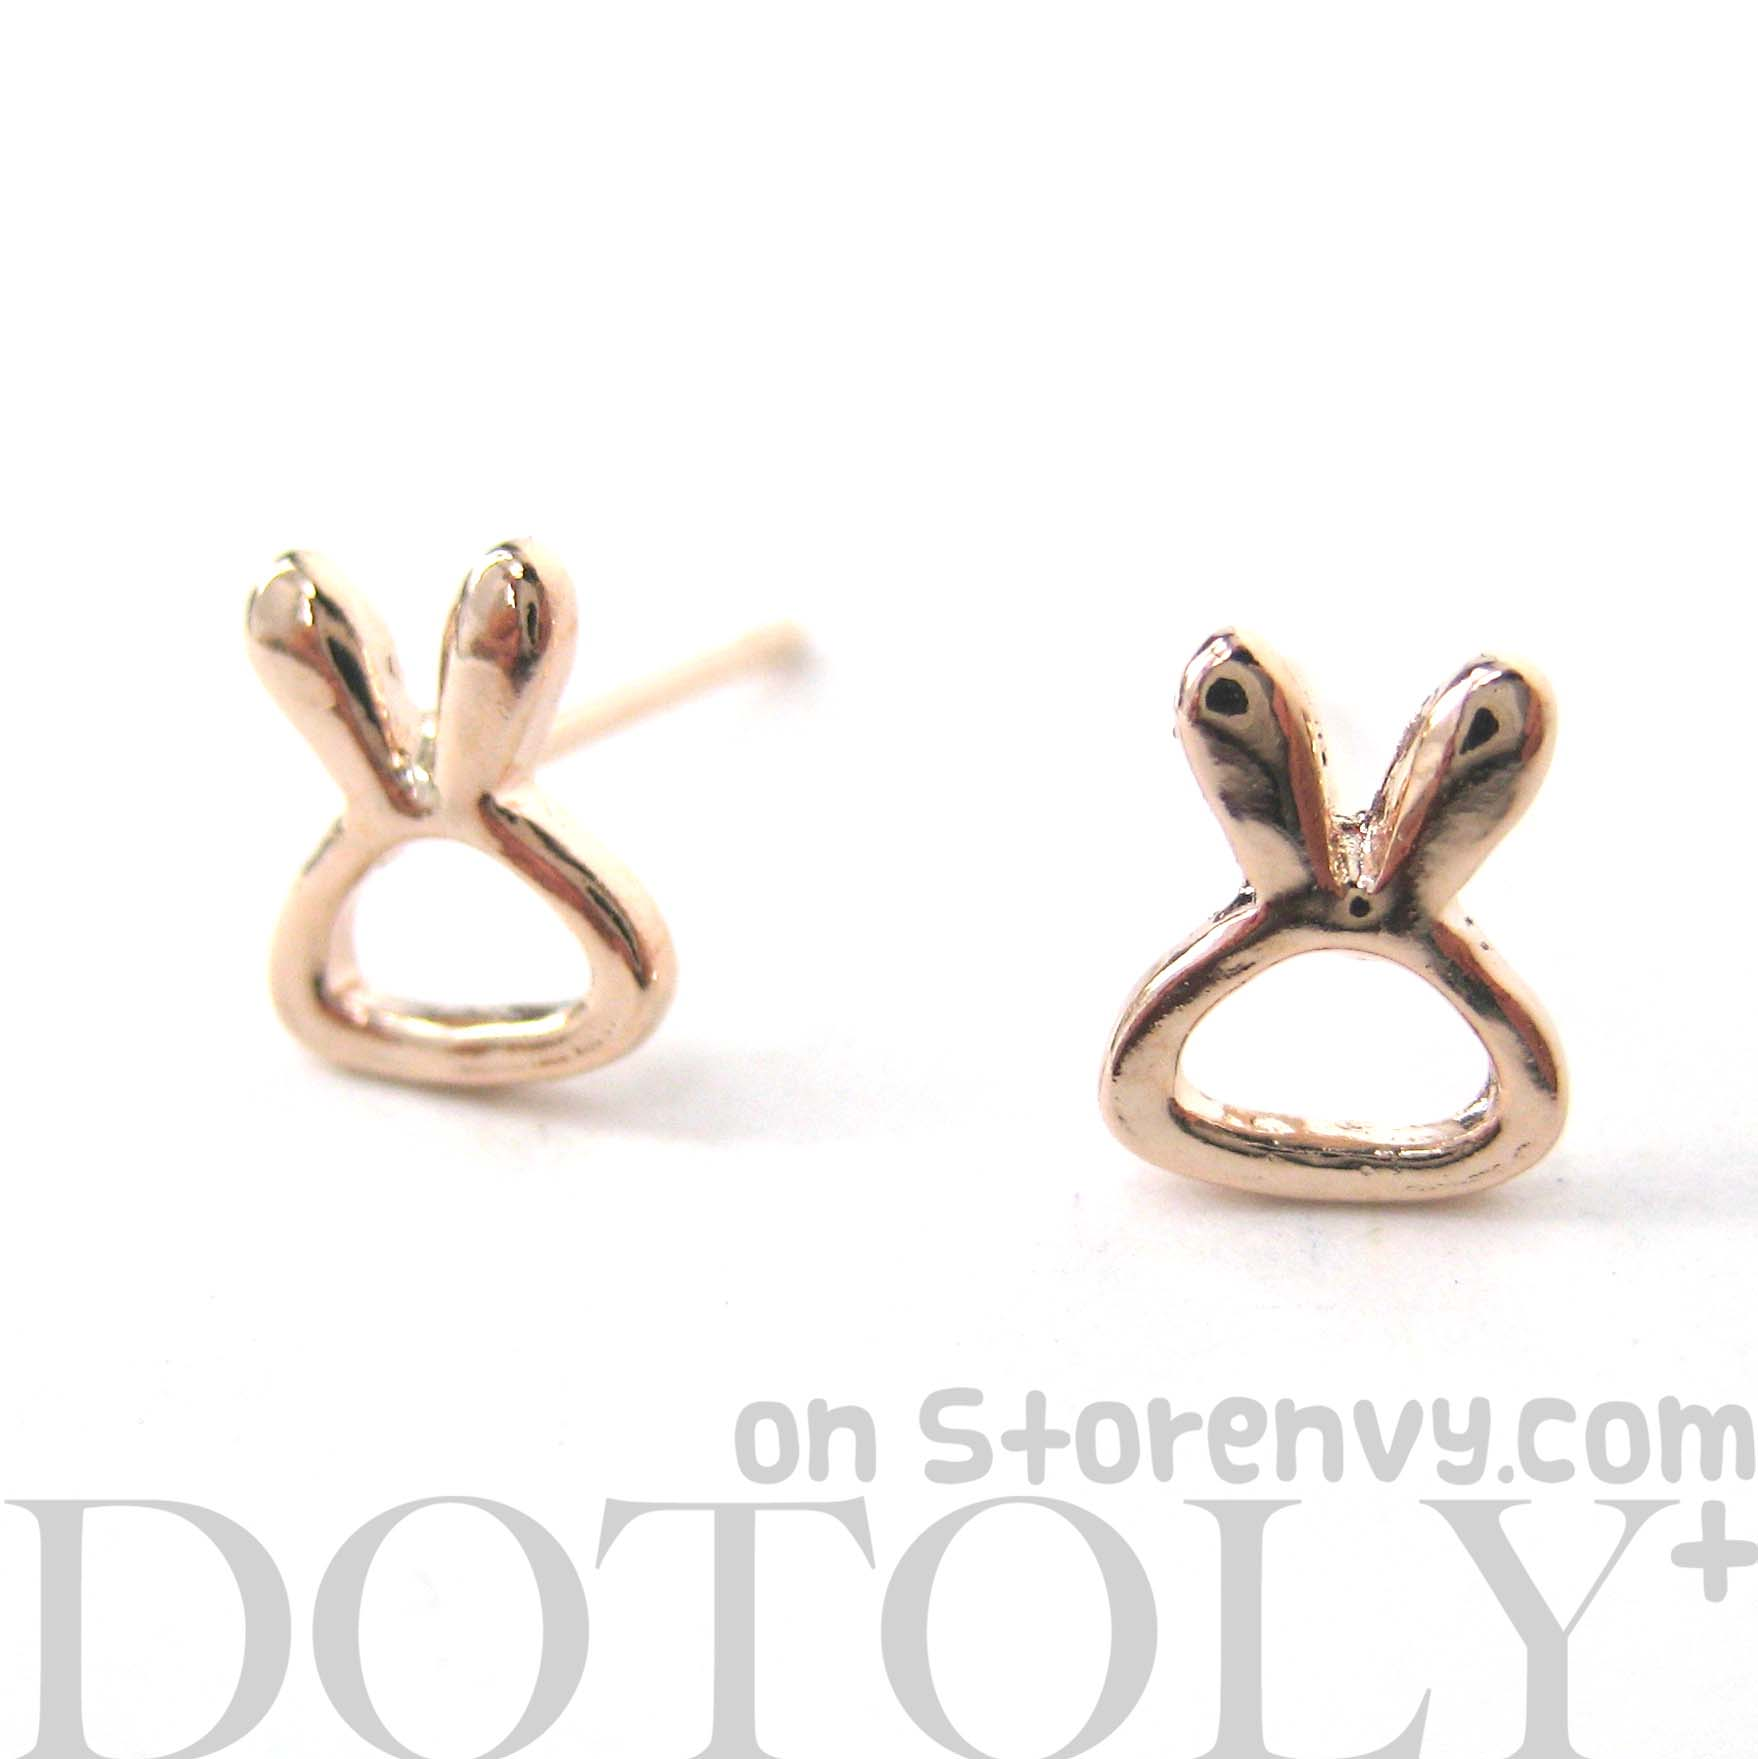 dotoly plus small rabbit bunny outline animal stud earrings in